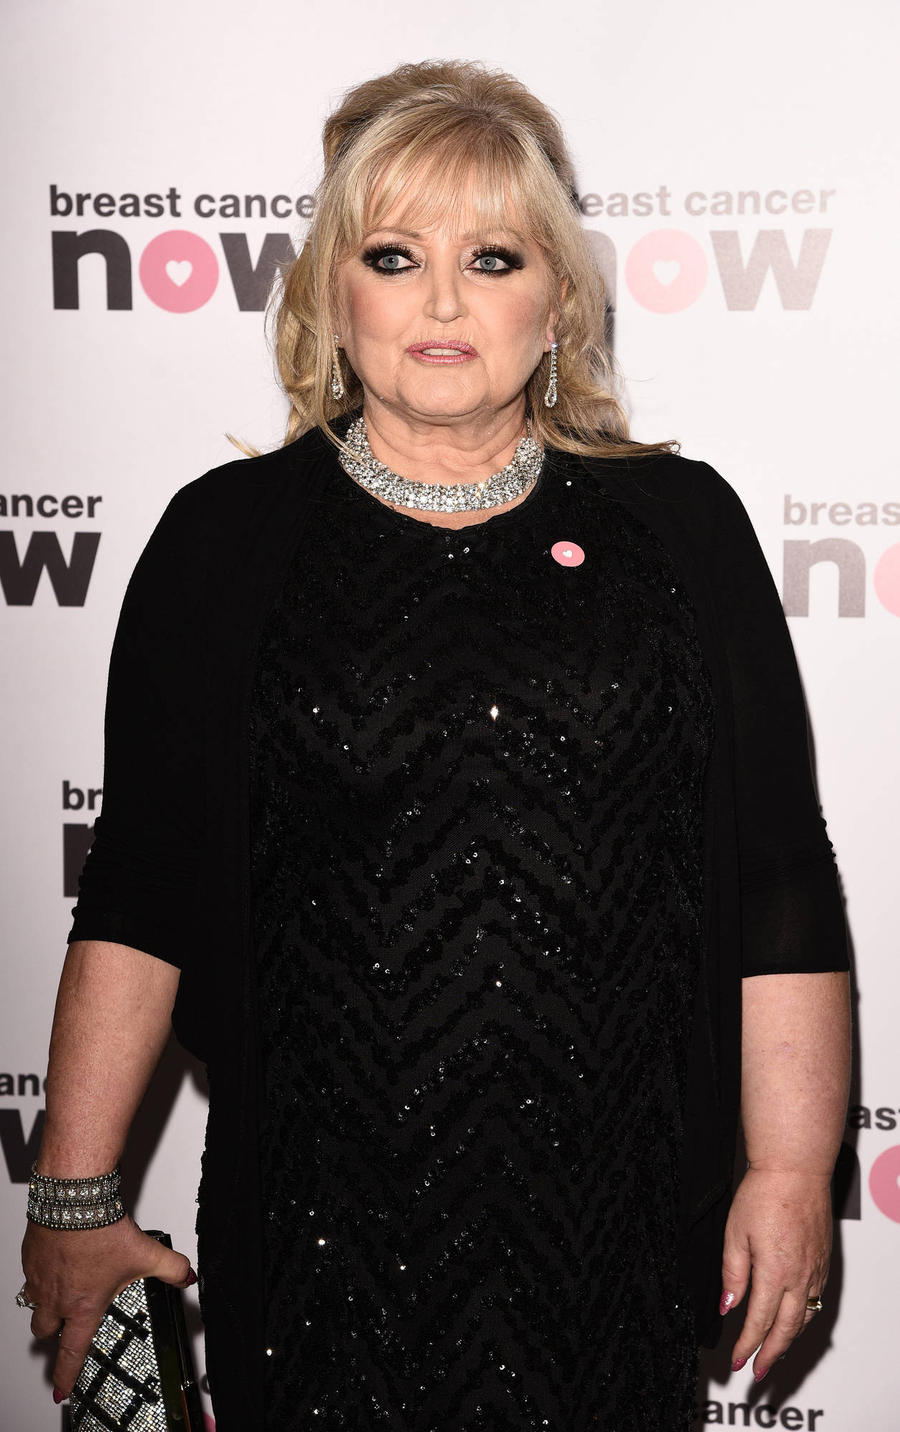 Linda Nolan: 'I Don't Want To Die'